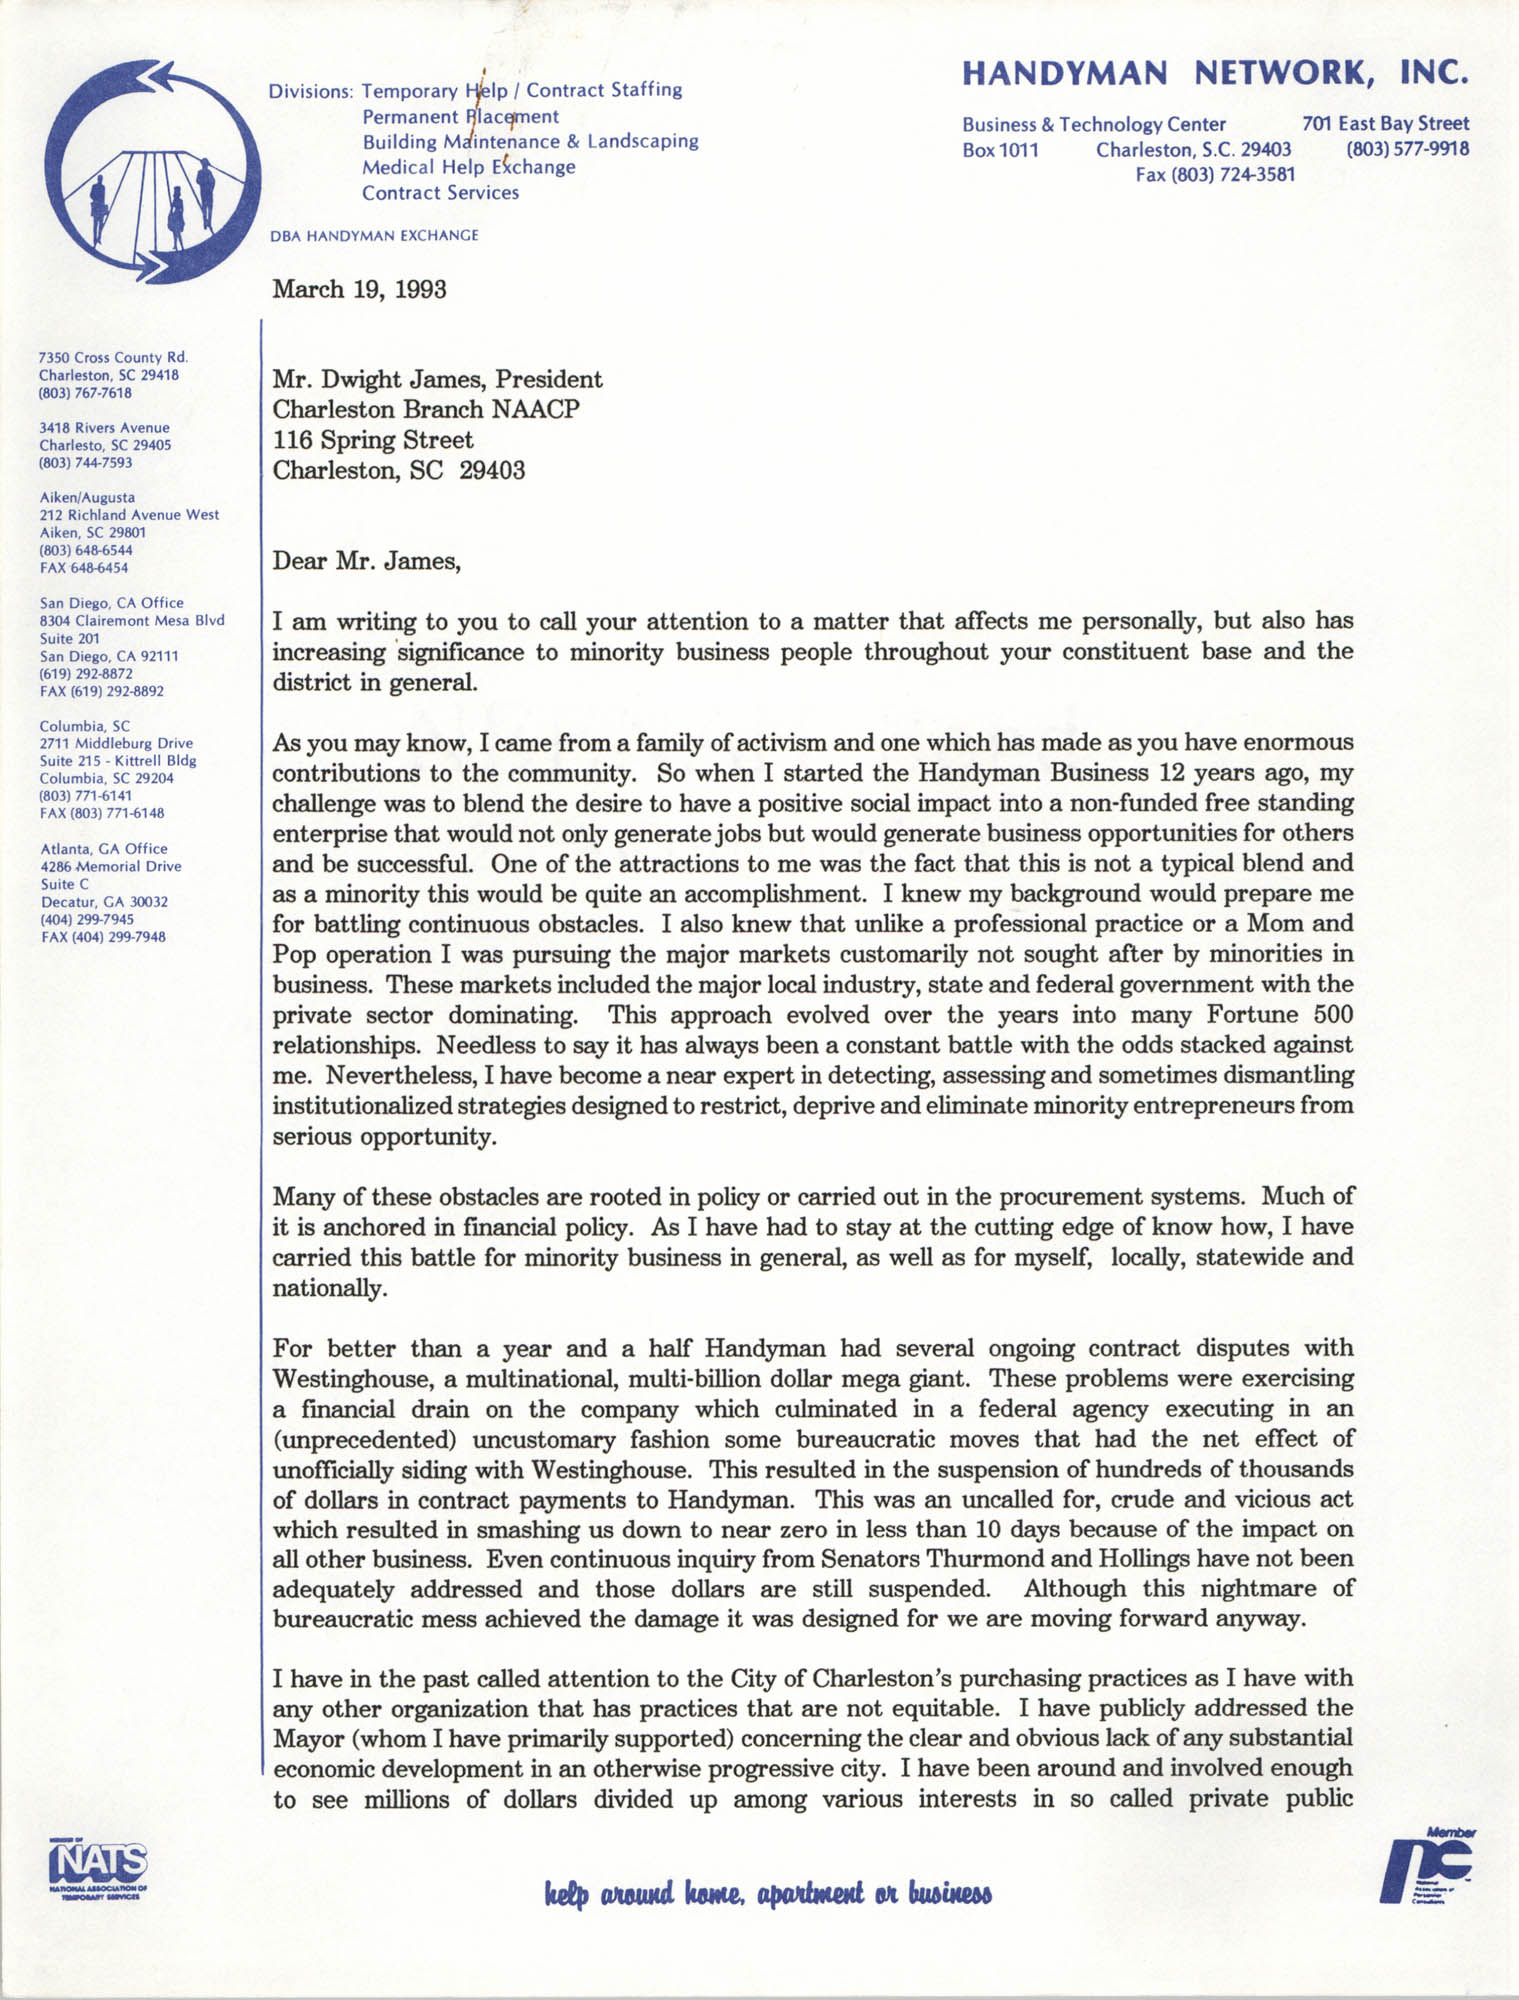 Letter from Andre V. Woods to Dwight James, March 19, 1993